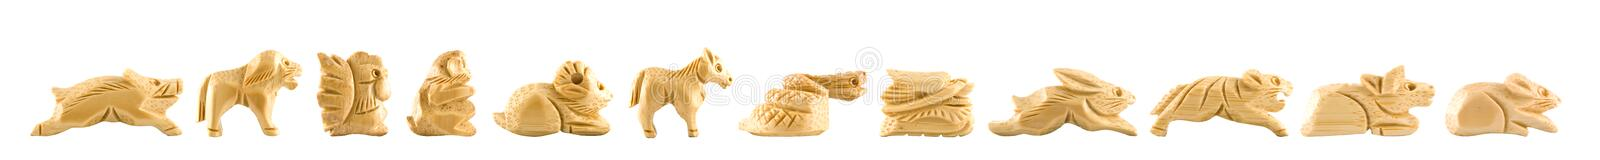 Download Woodcarving Chinese sign stock image. Image of astrological - 7848515